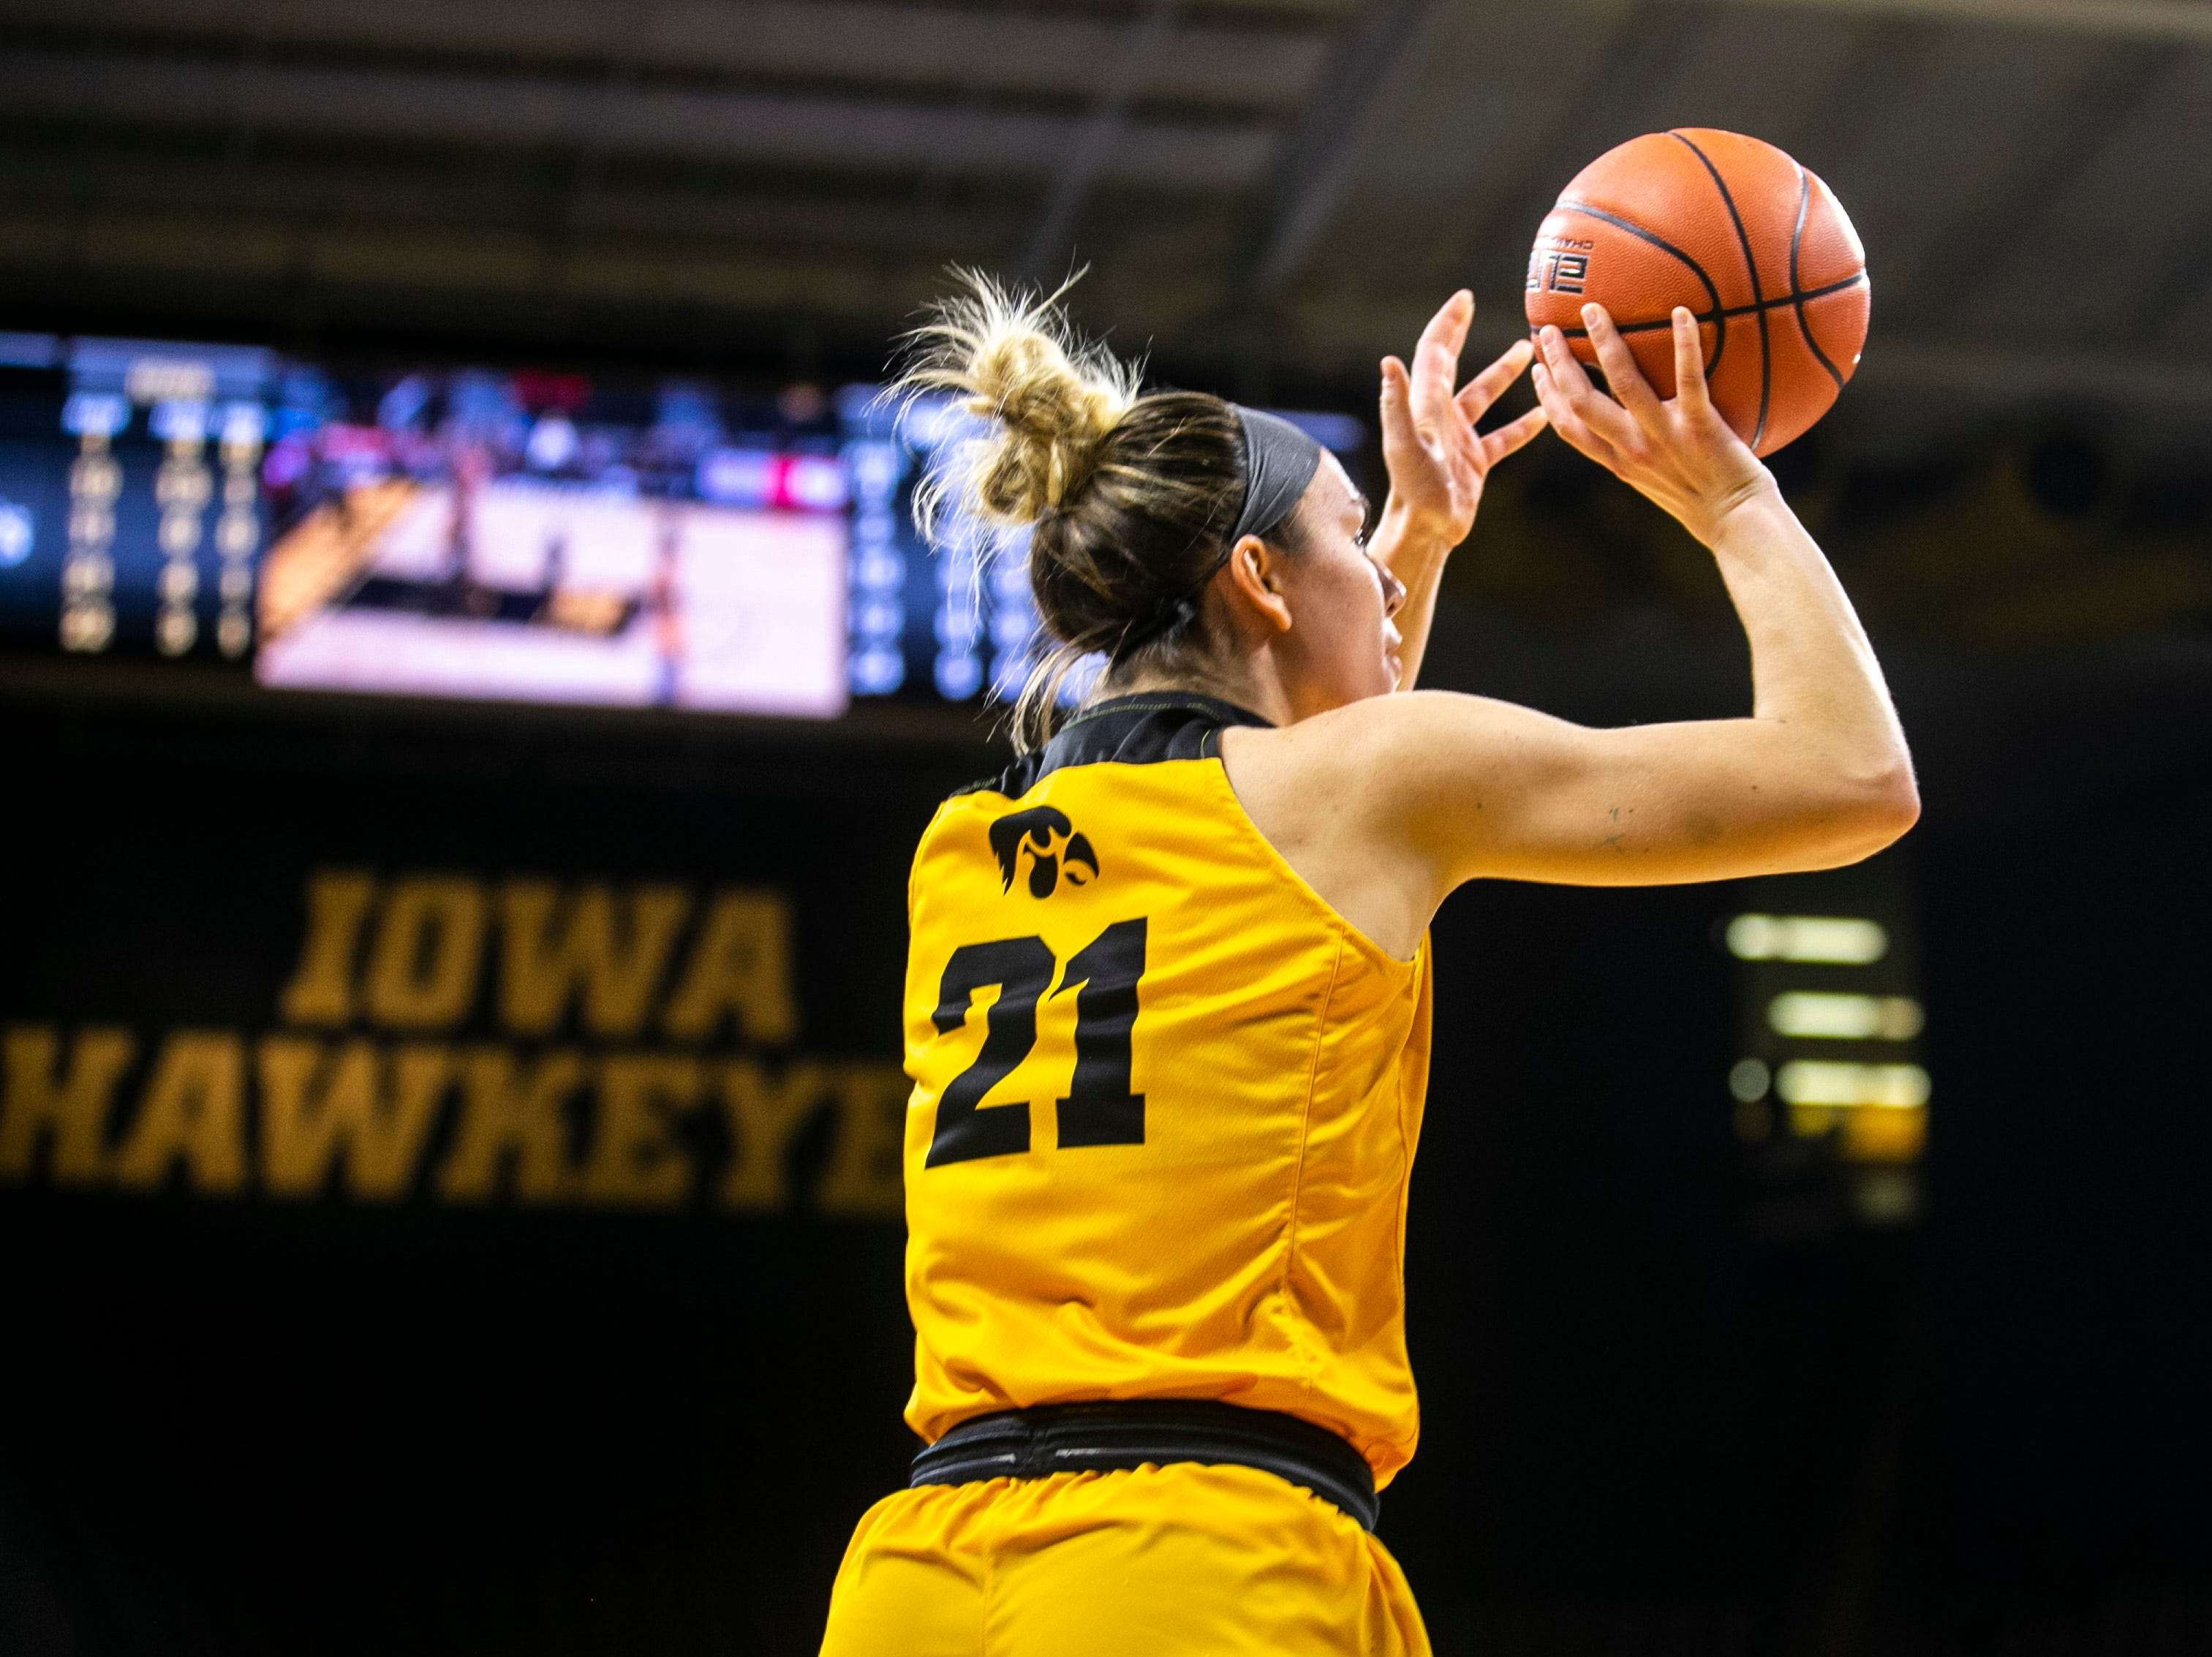 Iowa forward Hannah Stewart (21) attempts a basket during a NCAA Big Ten Conference women's basketball game on Thursday, Feb. 7, 2019 at Carver-Hawkeye Arena in Iowa City, Iowa.